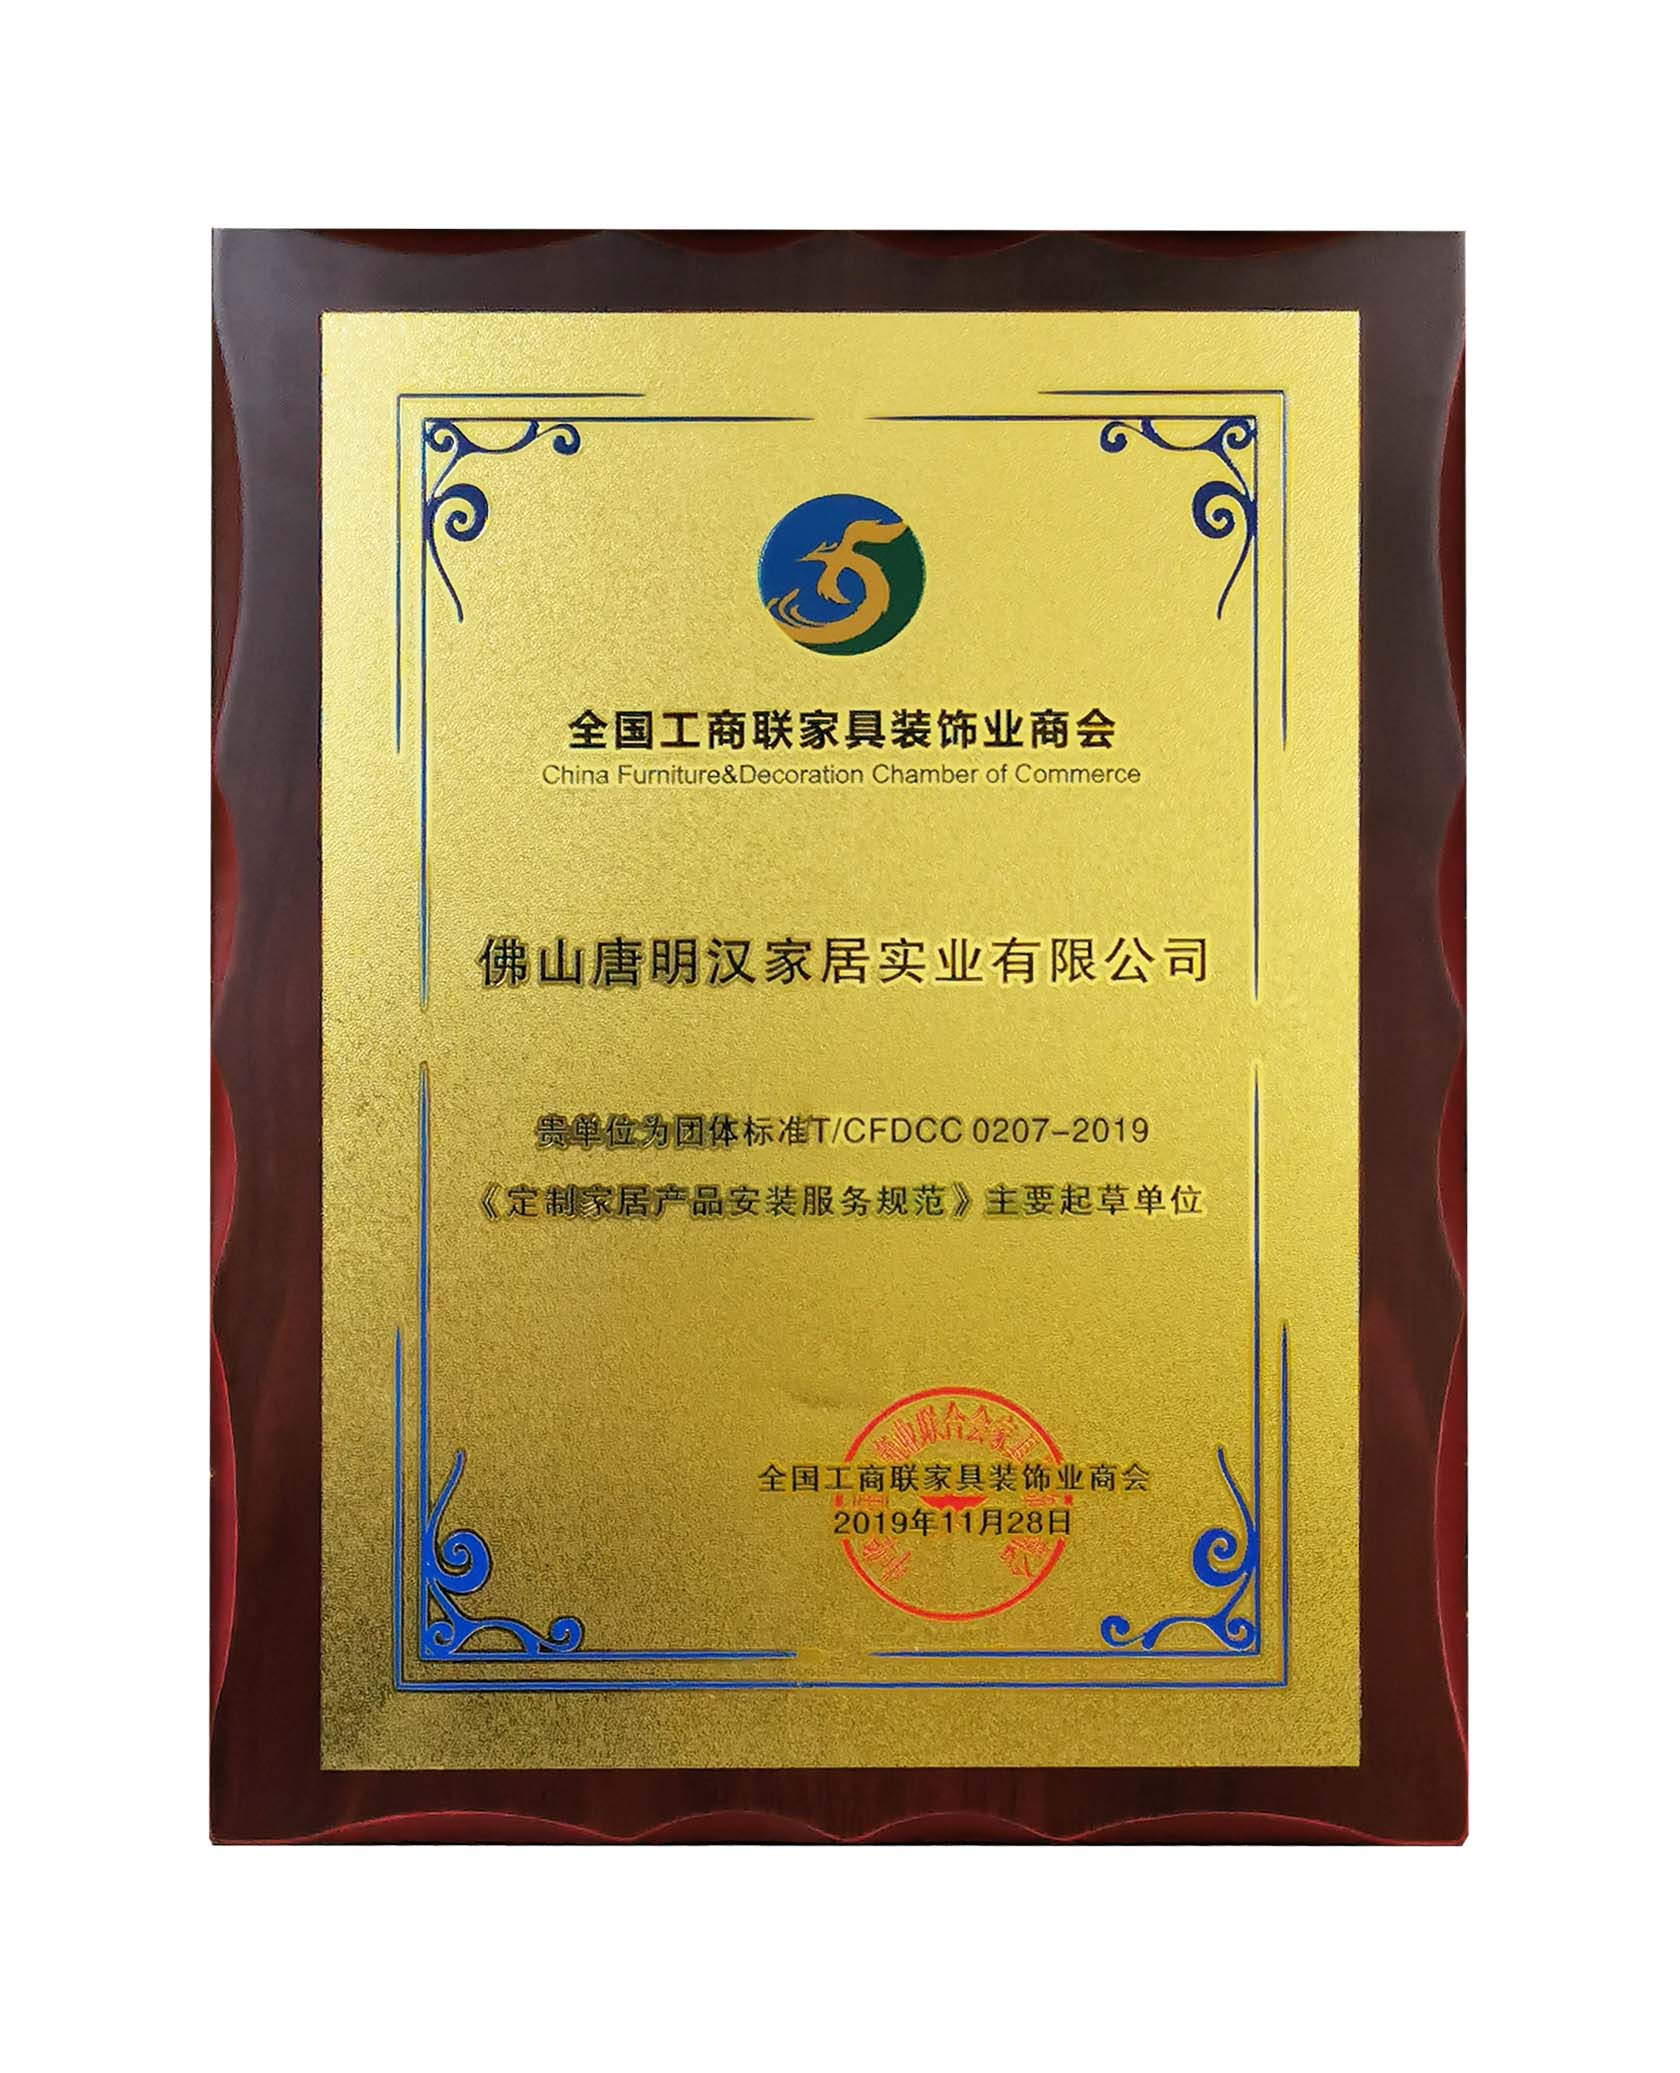 The main draft unit of the customized furniture products and services